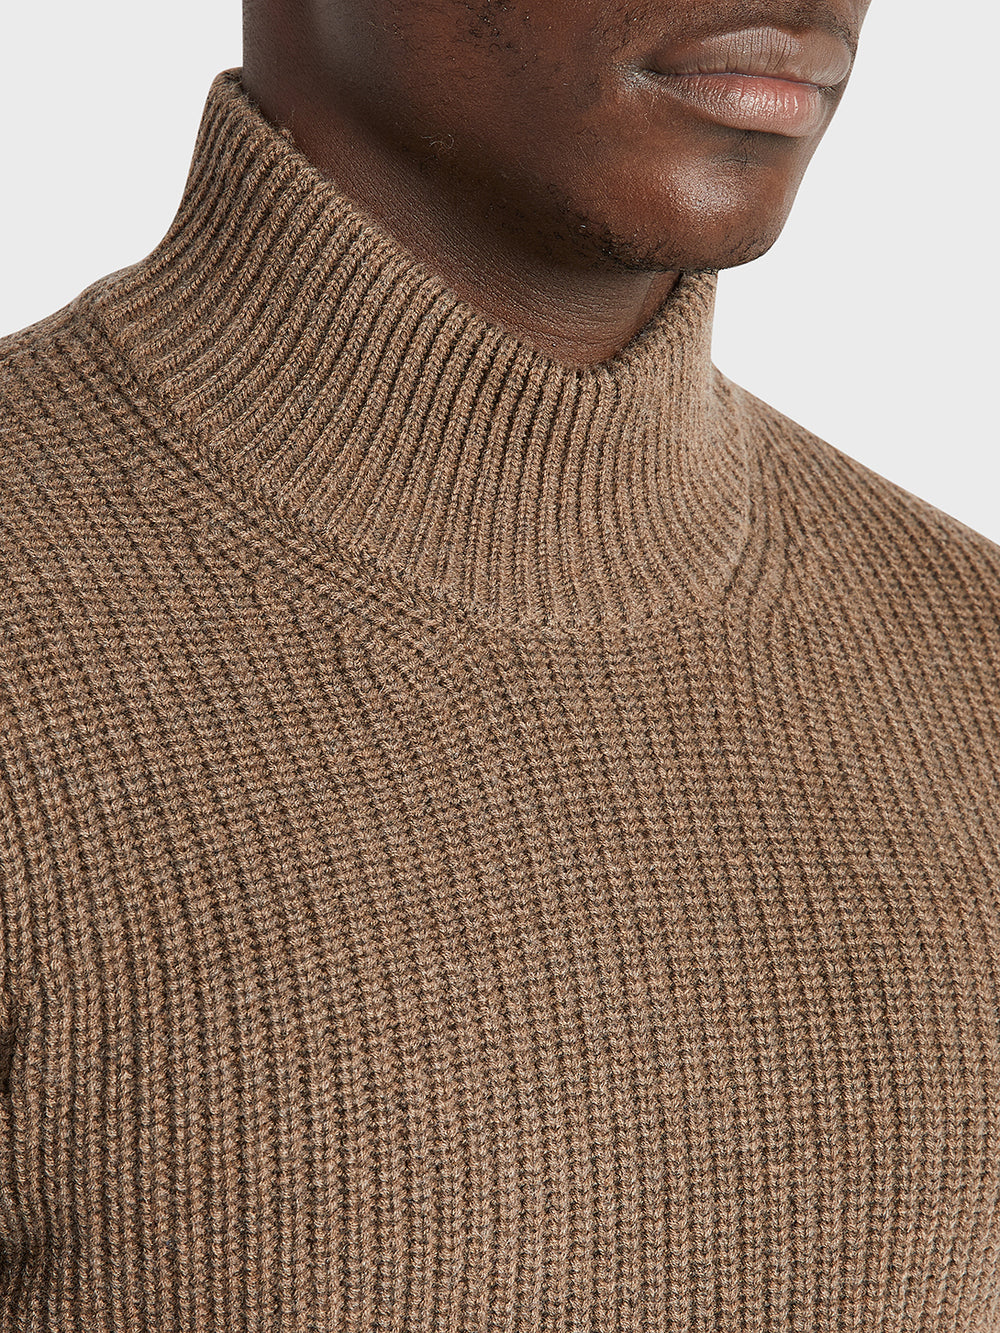 black friday deals ONS Clothing Men's Acton Mock Neck Sweater in COFFEE